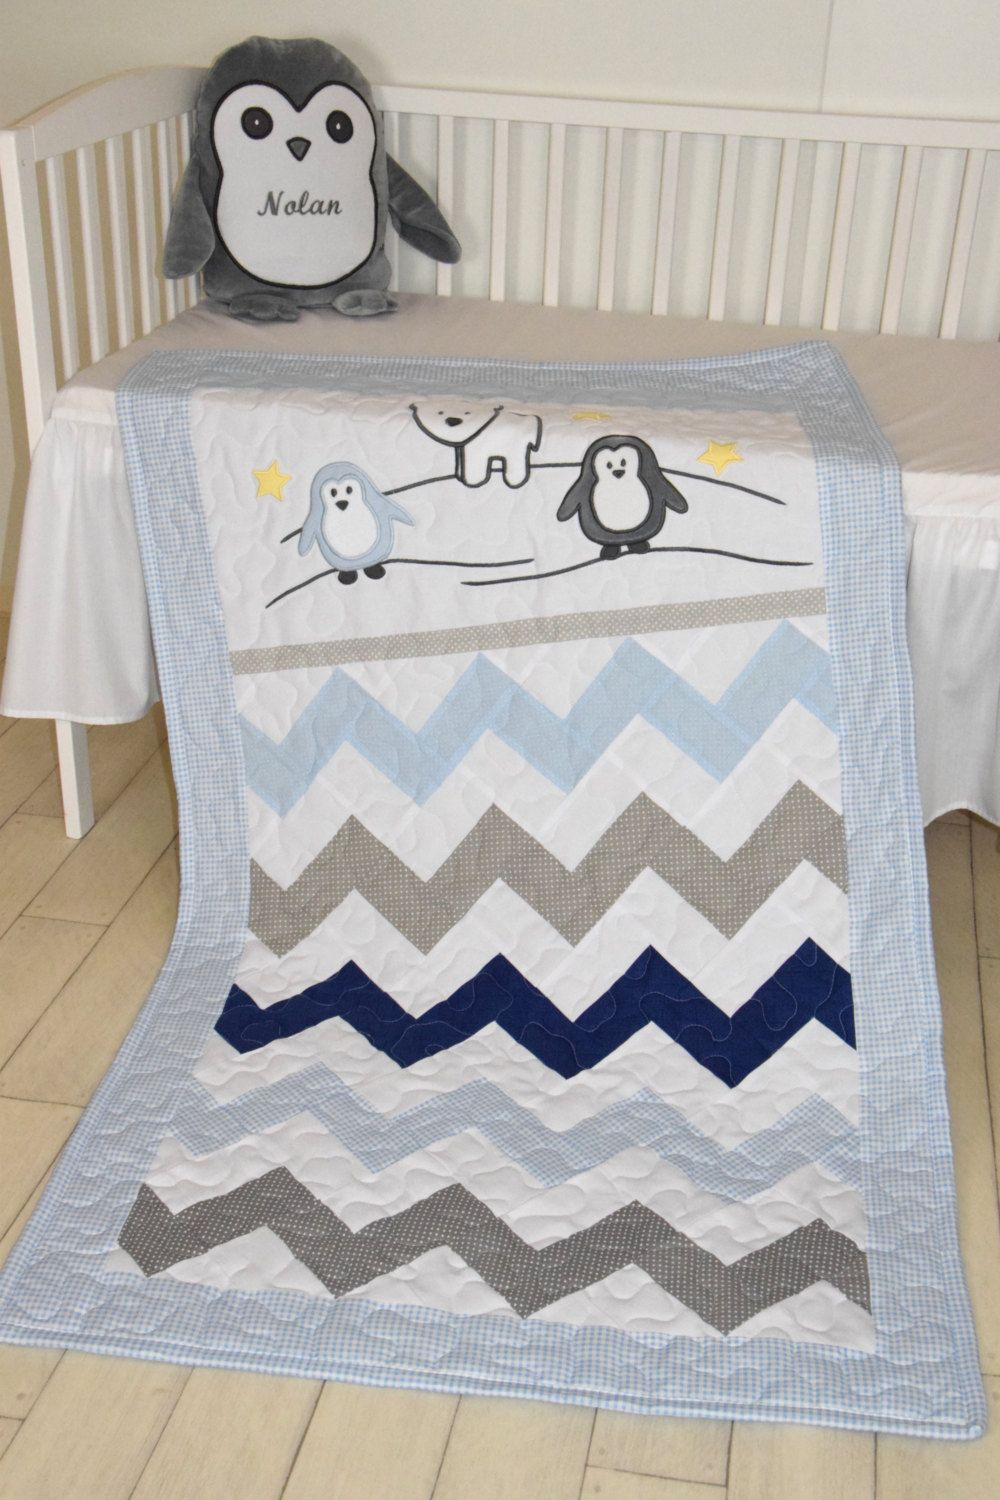 Chevron Crib Bedding, Penguin Baby Quilt, Gray Navy Blue White Toddler Blanket, Gift for New Baby I made a cute penguin baby blanket. Nice for boys, with different colours of course. I used the timeless chevron pattern, and made the applications with patchwork technique. Can be made any size and colour, or with different applications.  Quilt : -width: 31,5 -height: 56 ; 77 x 137 cm ( crib mattress:27,5 x 52)   It will also be perfect to be used on the floor or backyard for playtime, thrown…